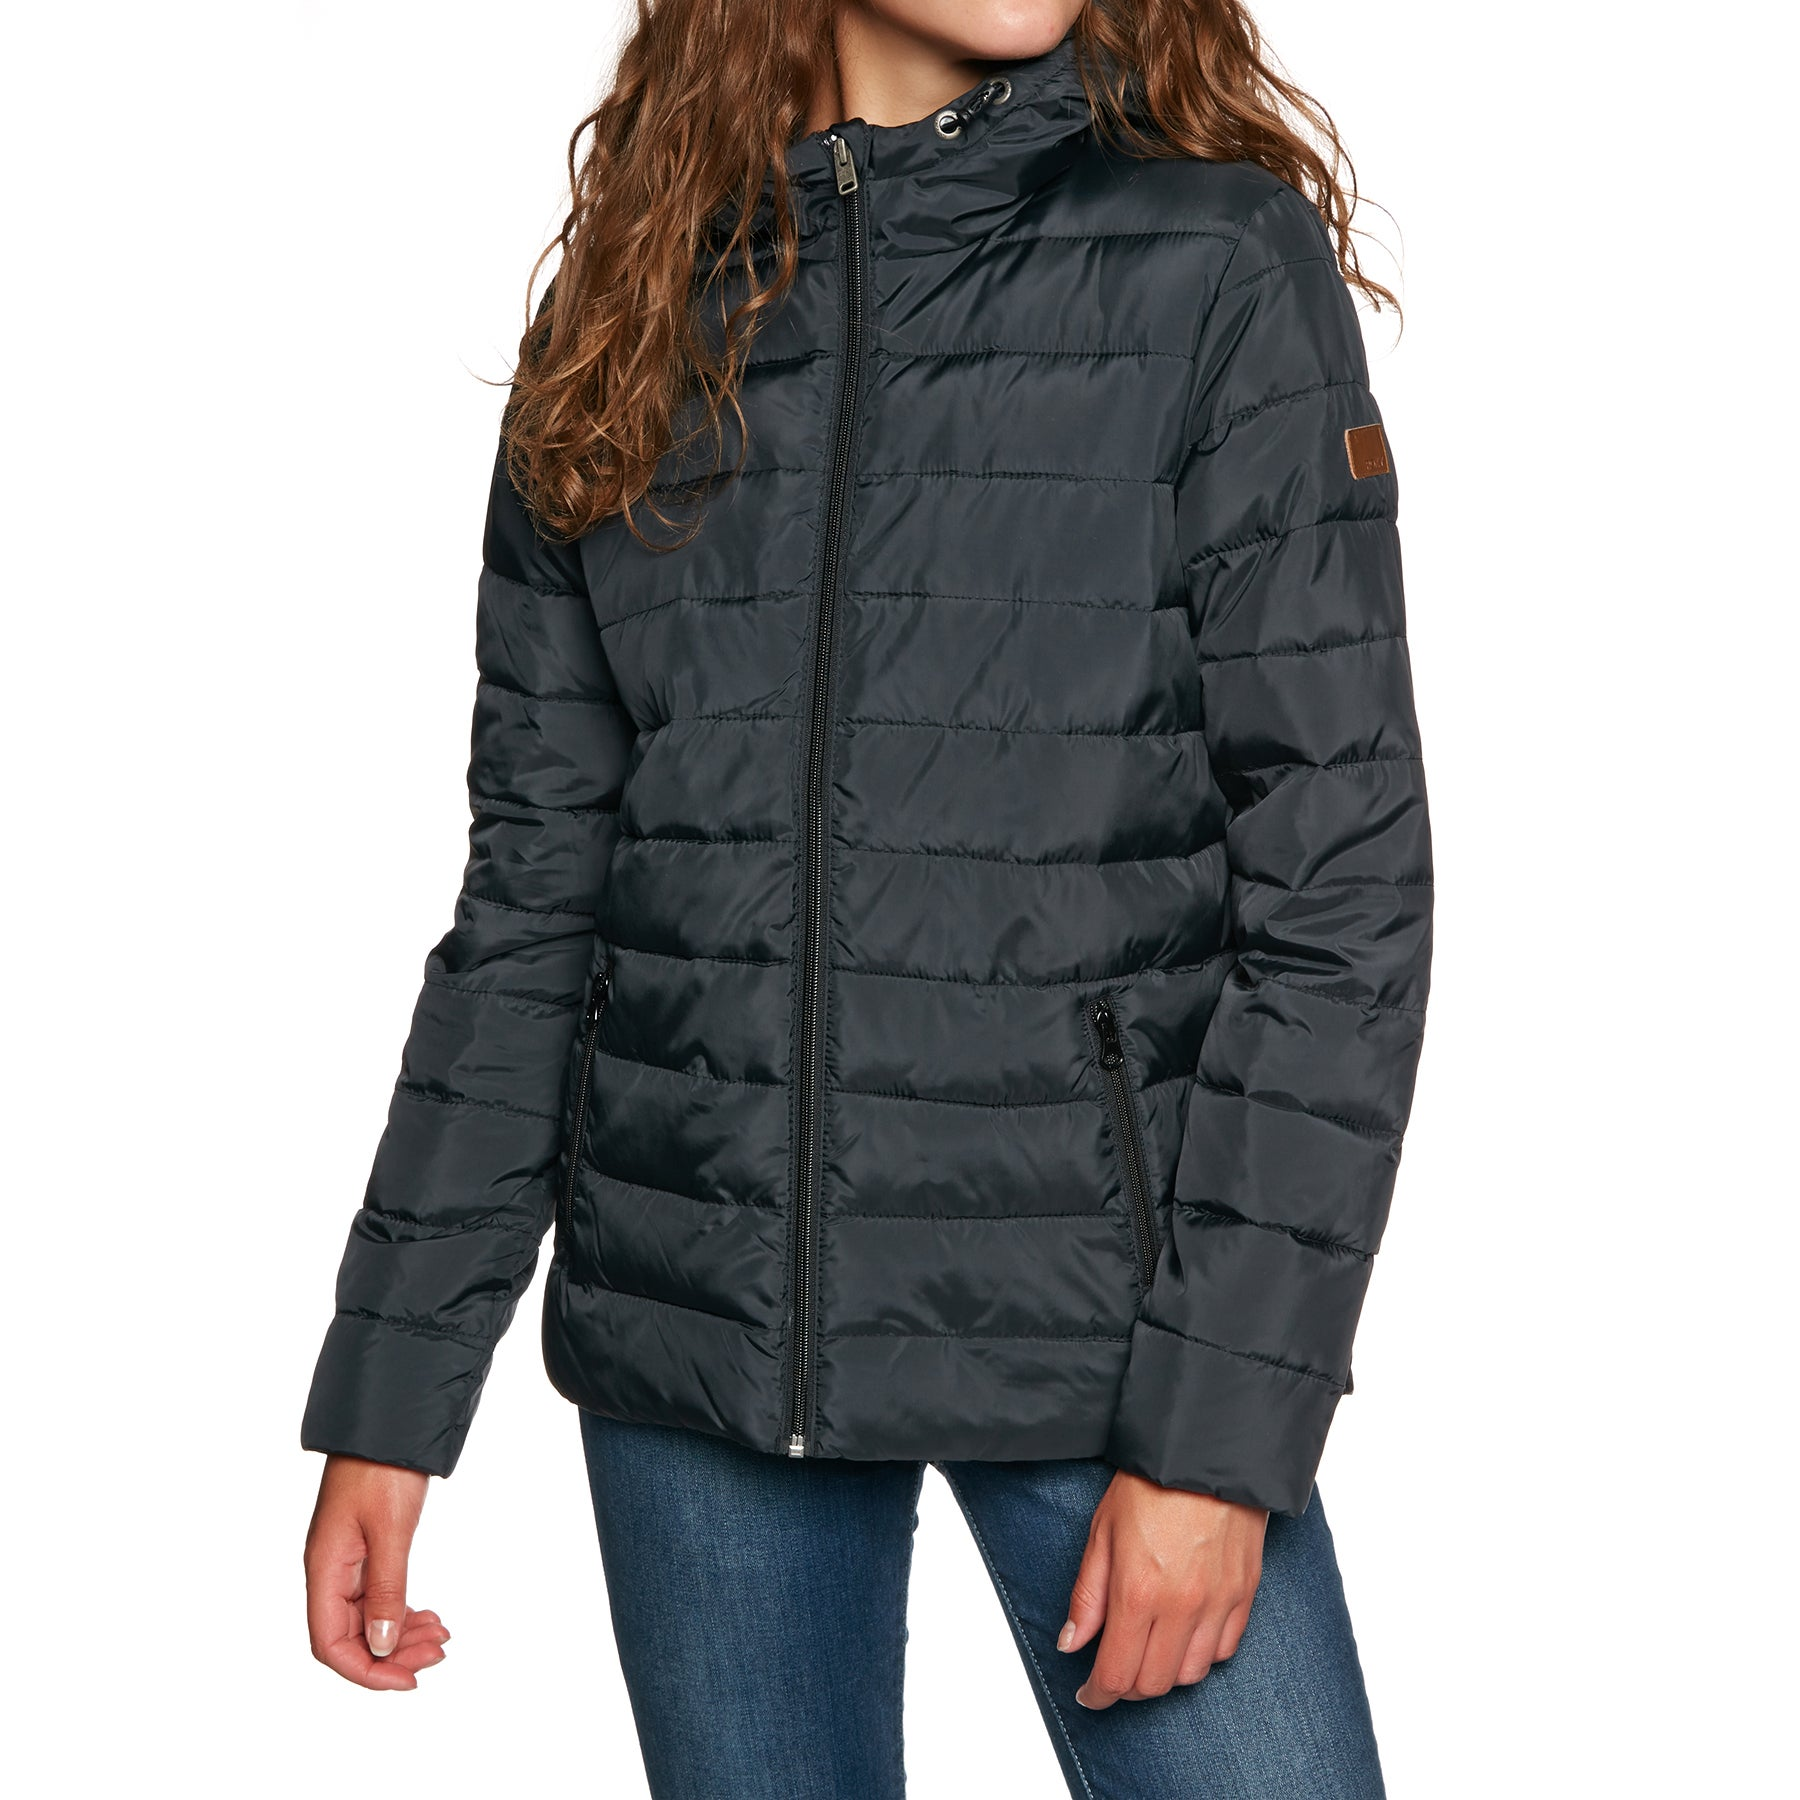 Roxy Rock Peak Ladies Jacket